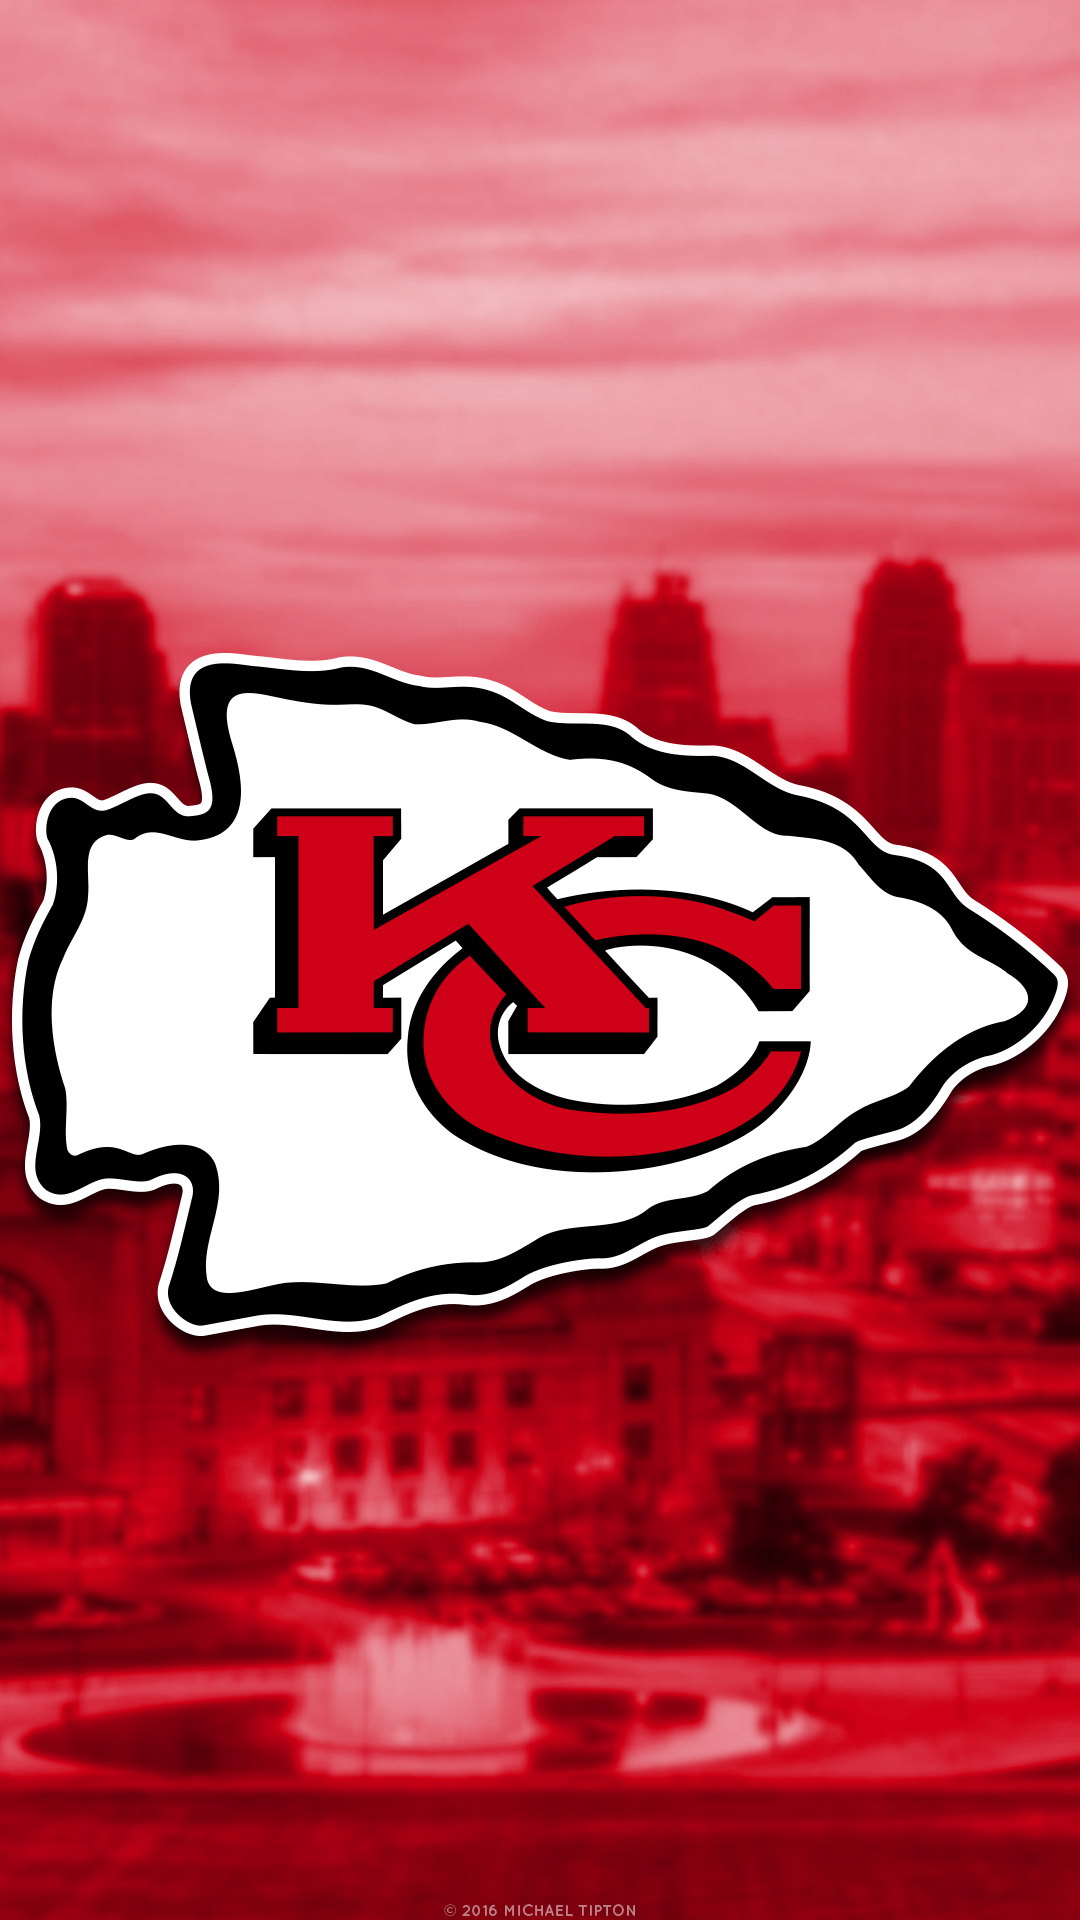 1080x1920 NFL - Kansas City Chiefs - 2 iPhone 6 Wallpaper | Kansas city ...